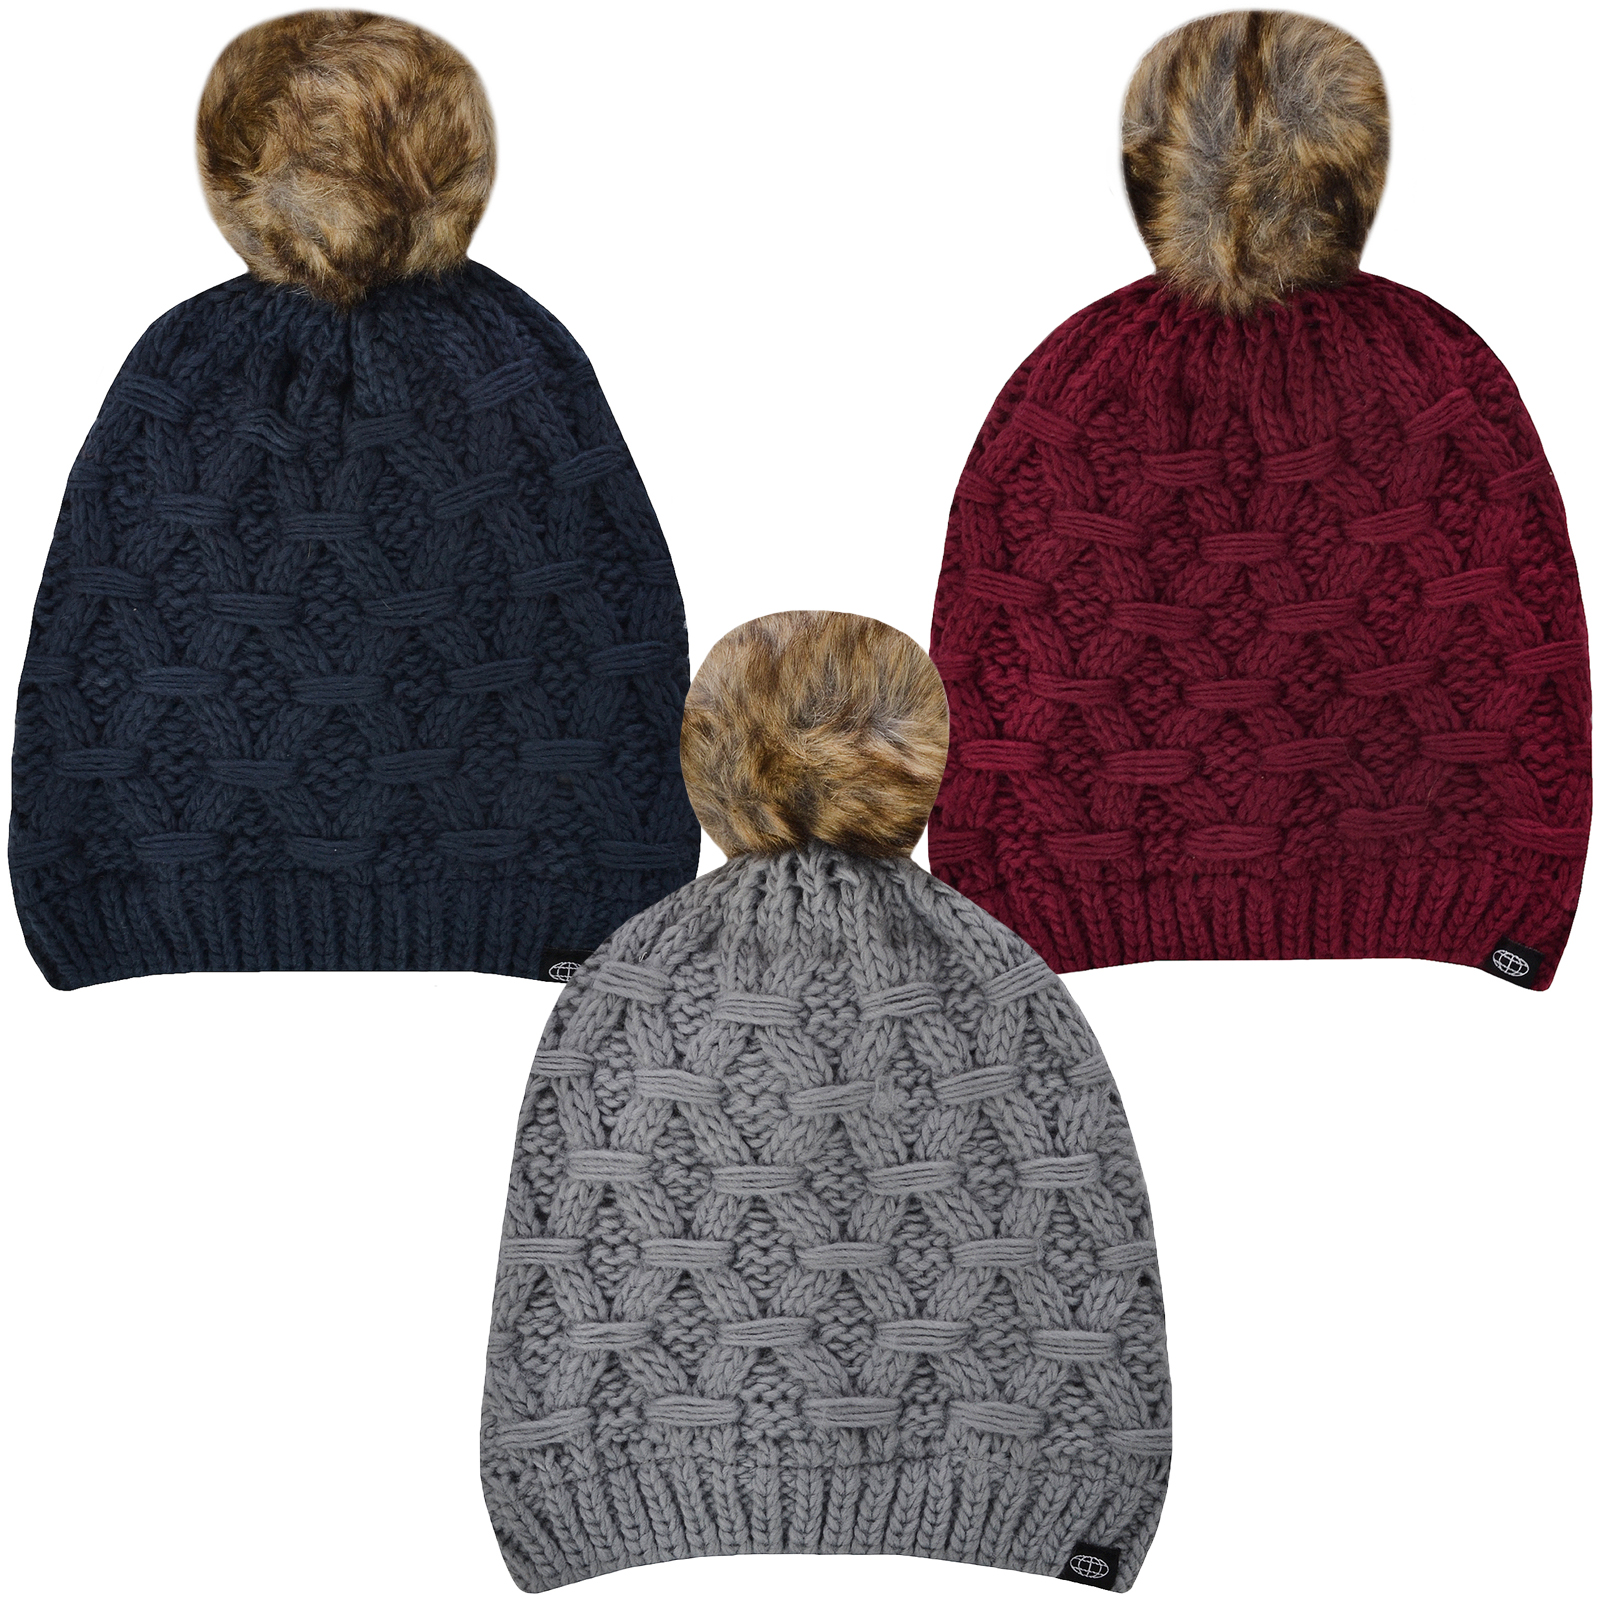 7dc03736afc Details about ProClimate Womens Thinsulate Waterproof Winter Knitted Pom  Pom Beanie Bobble Hat